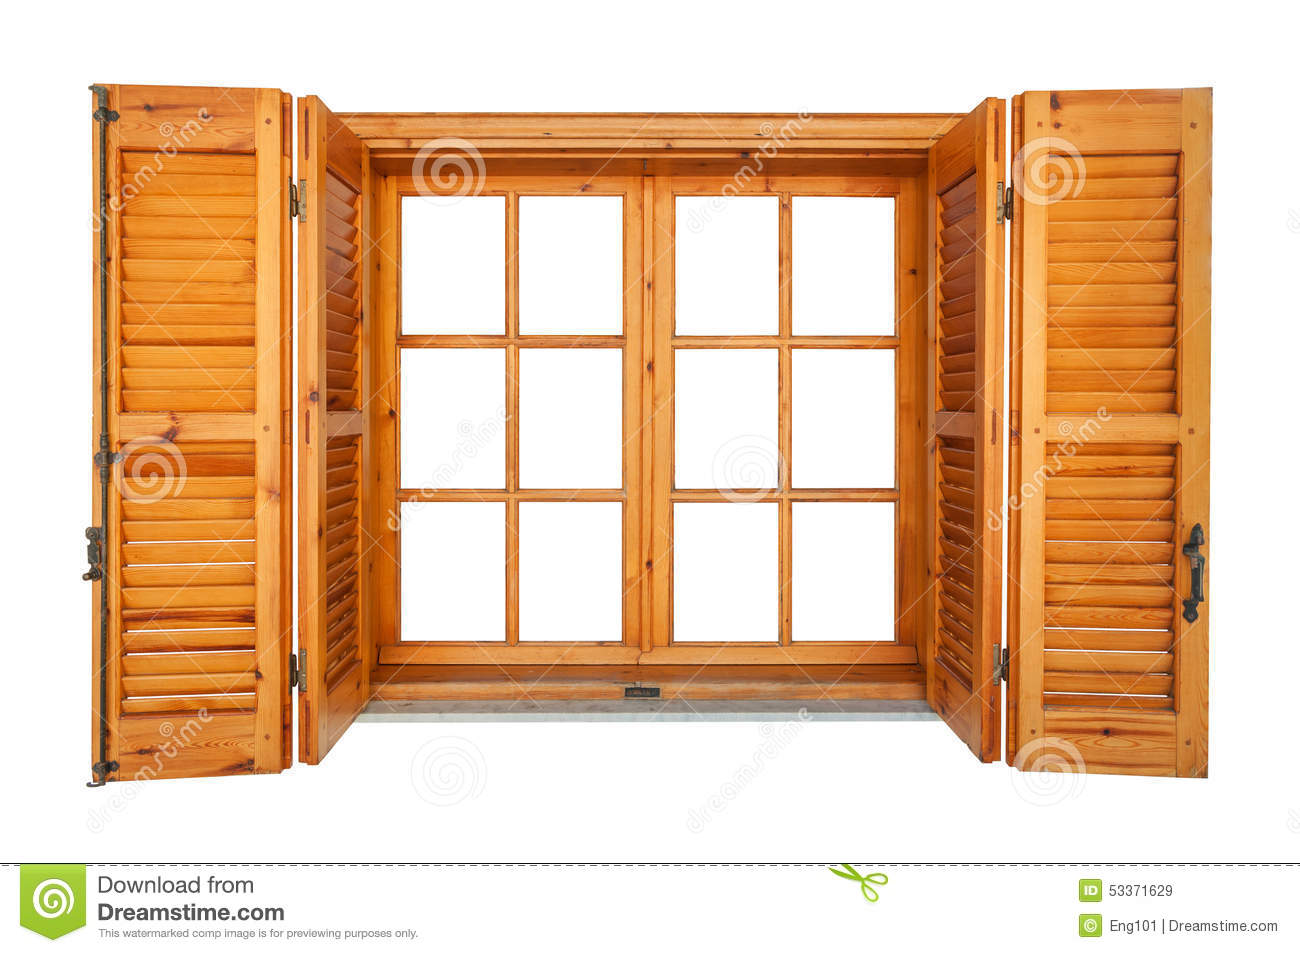 Wooden Window Shutters : Wooden window with shutters isolated stock image